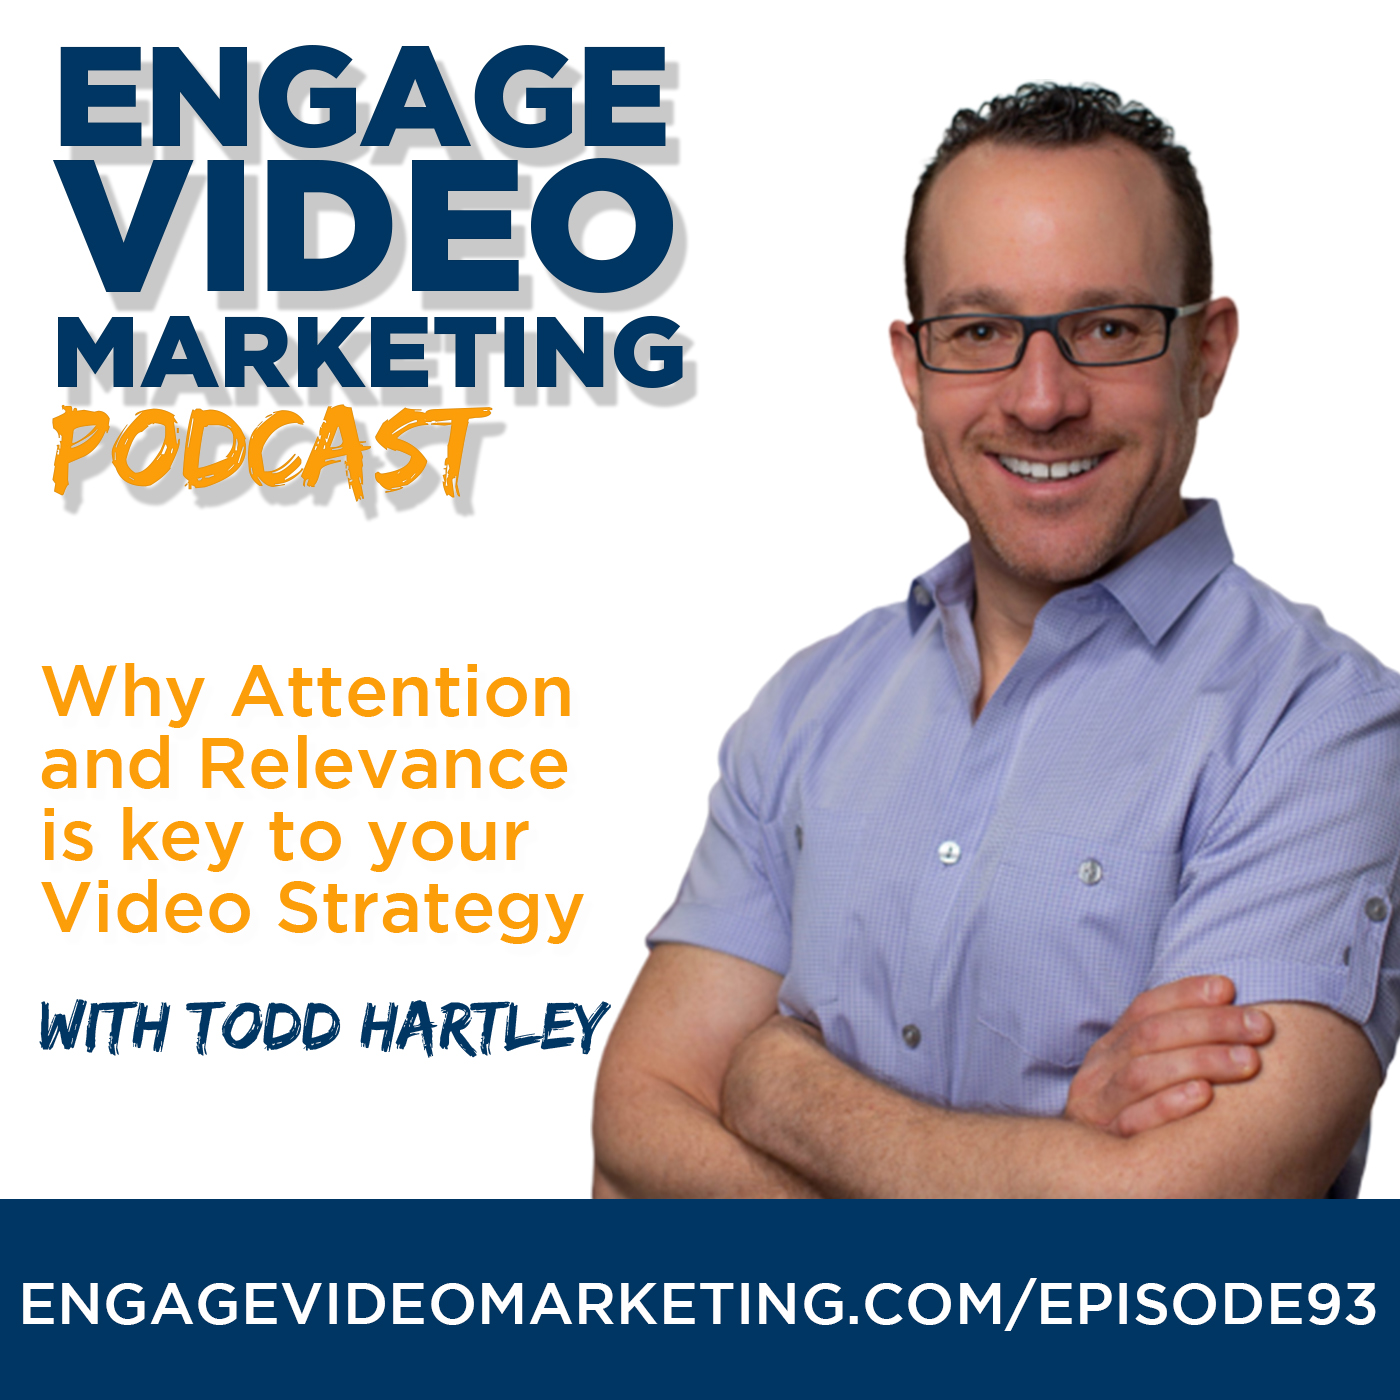 Why Attention and Relevance is key to your Video Strategy with Todd Hartley